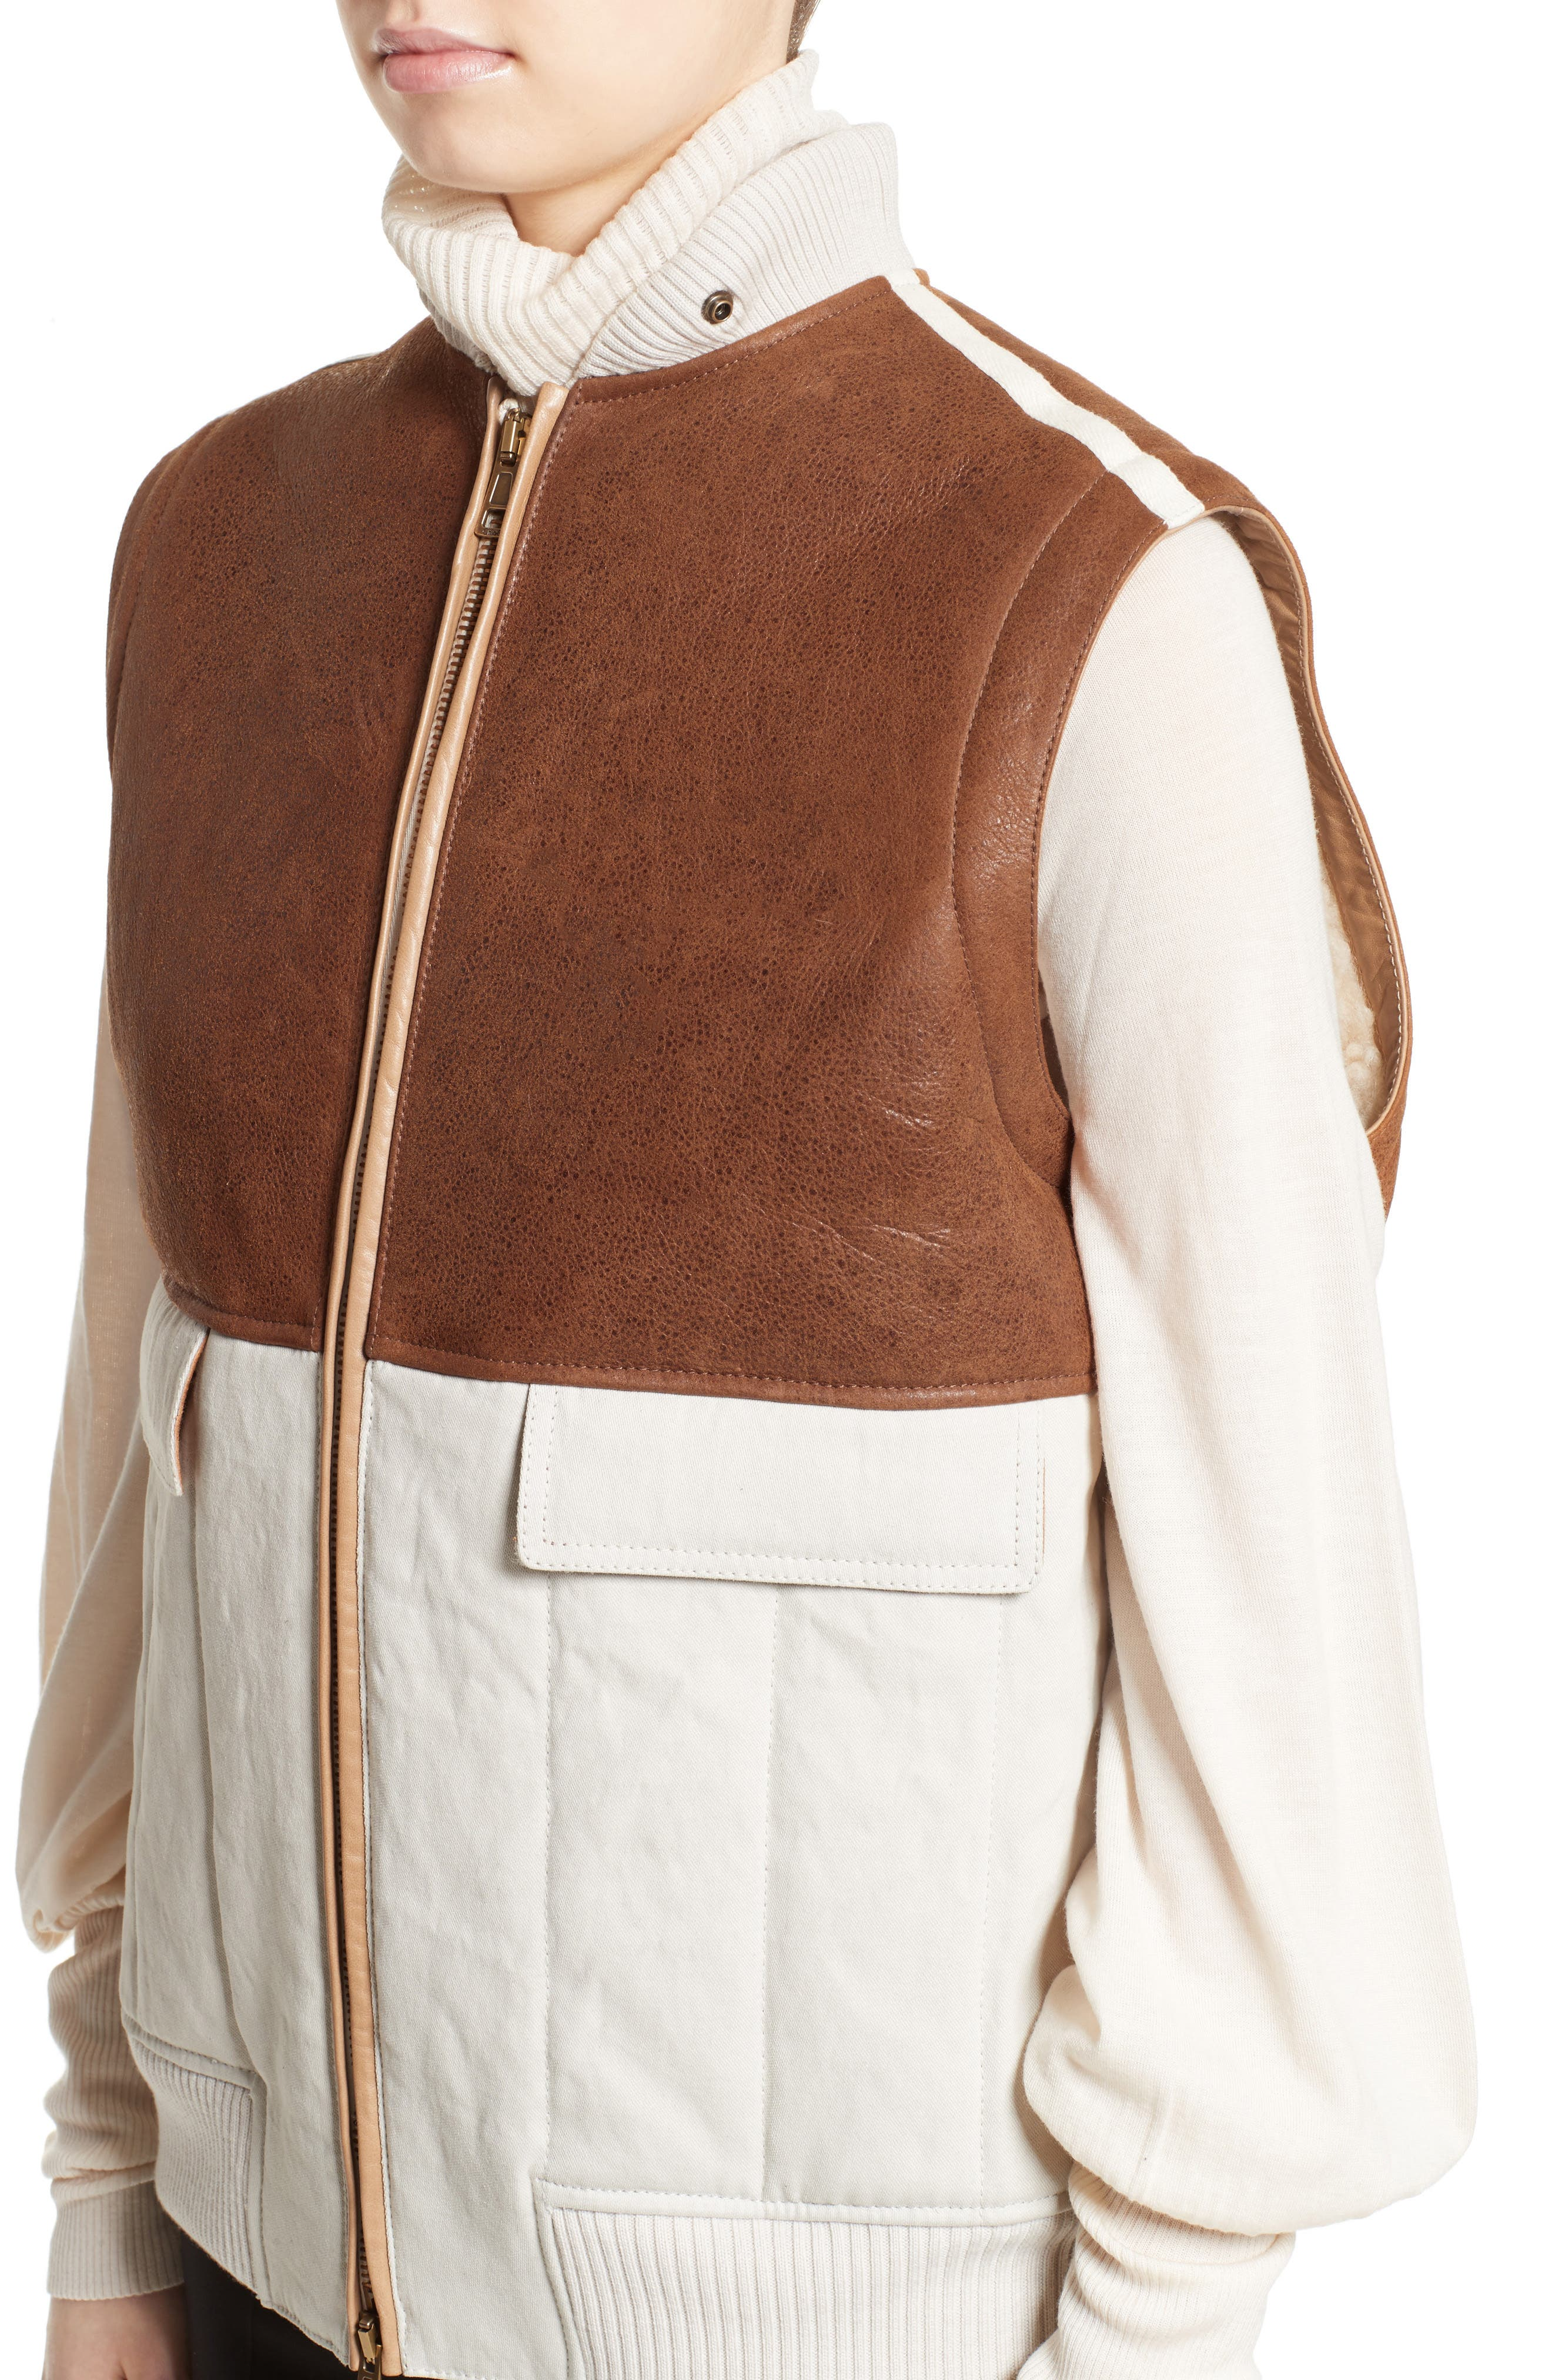 Genuine Shearling Trim Leather & Cotton Vest,                             Alternate thumbnail 6, color,                             Brown/ Beige